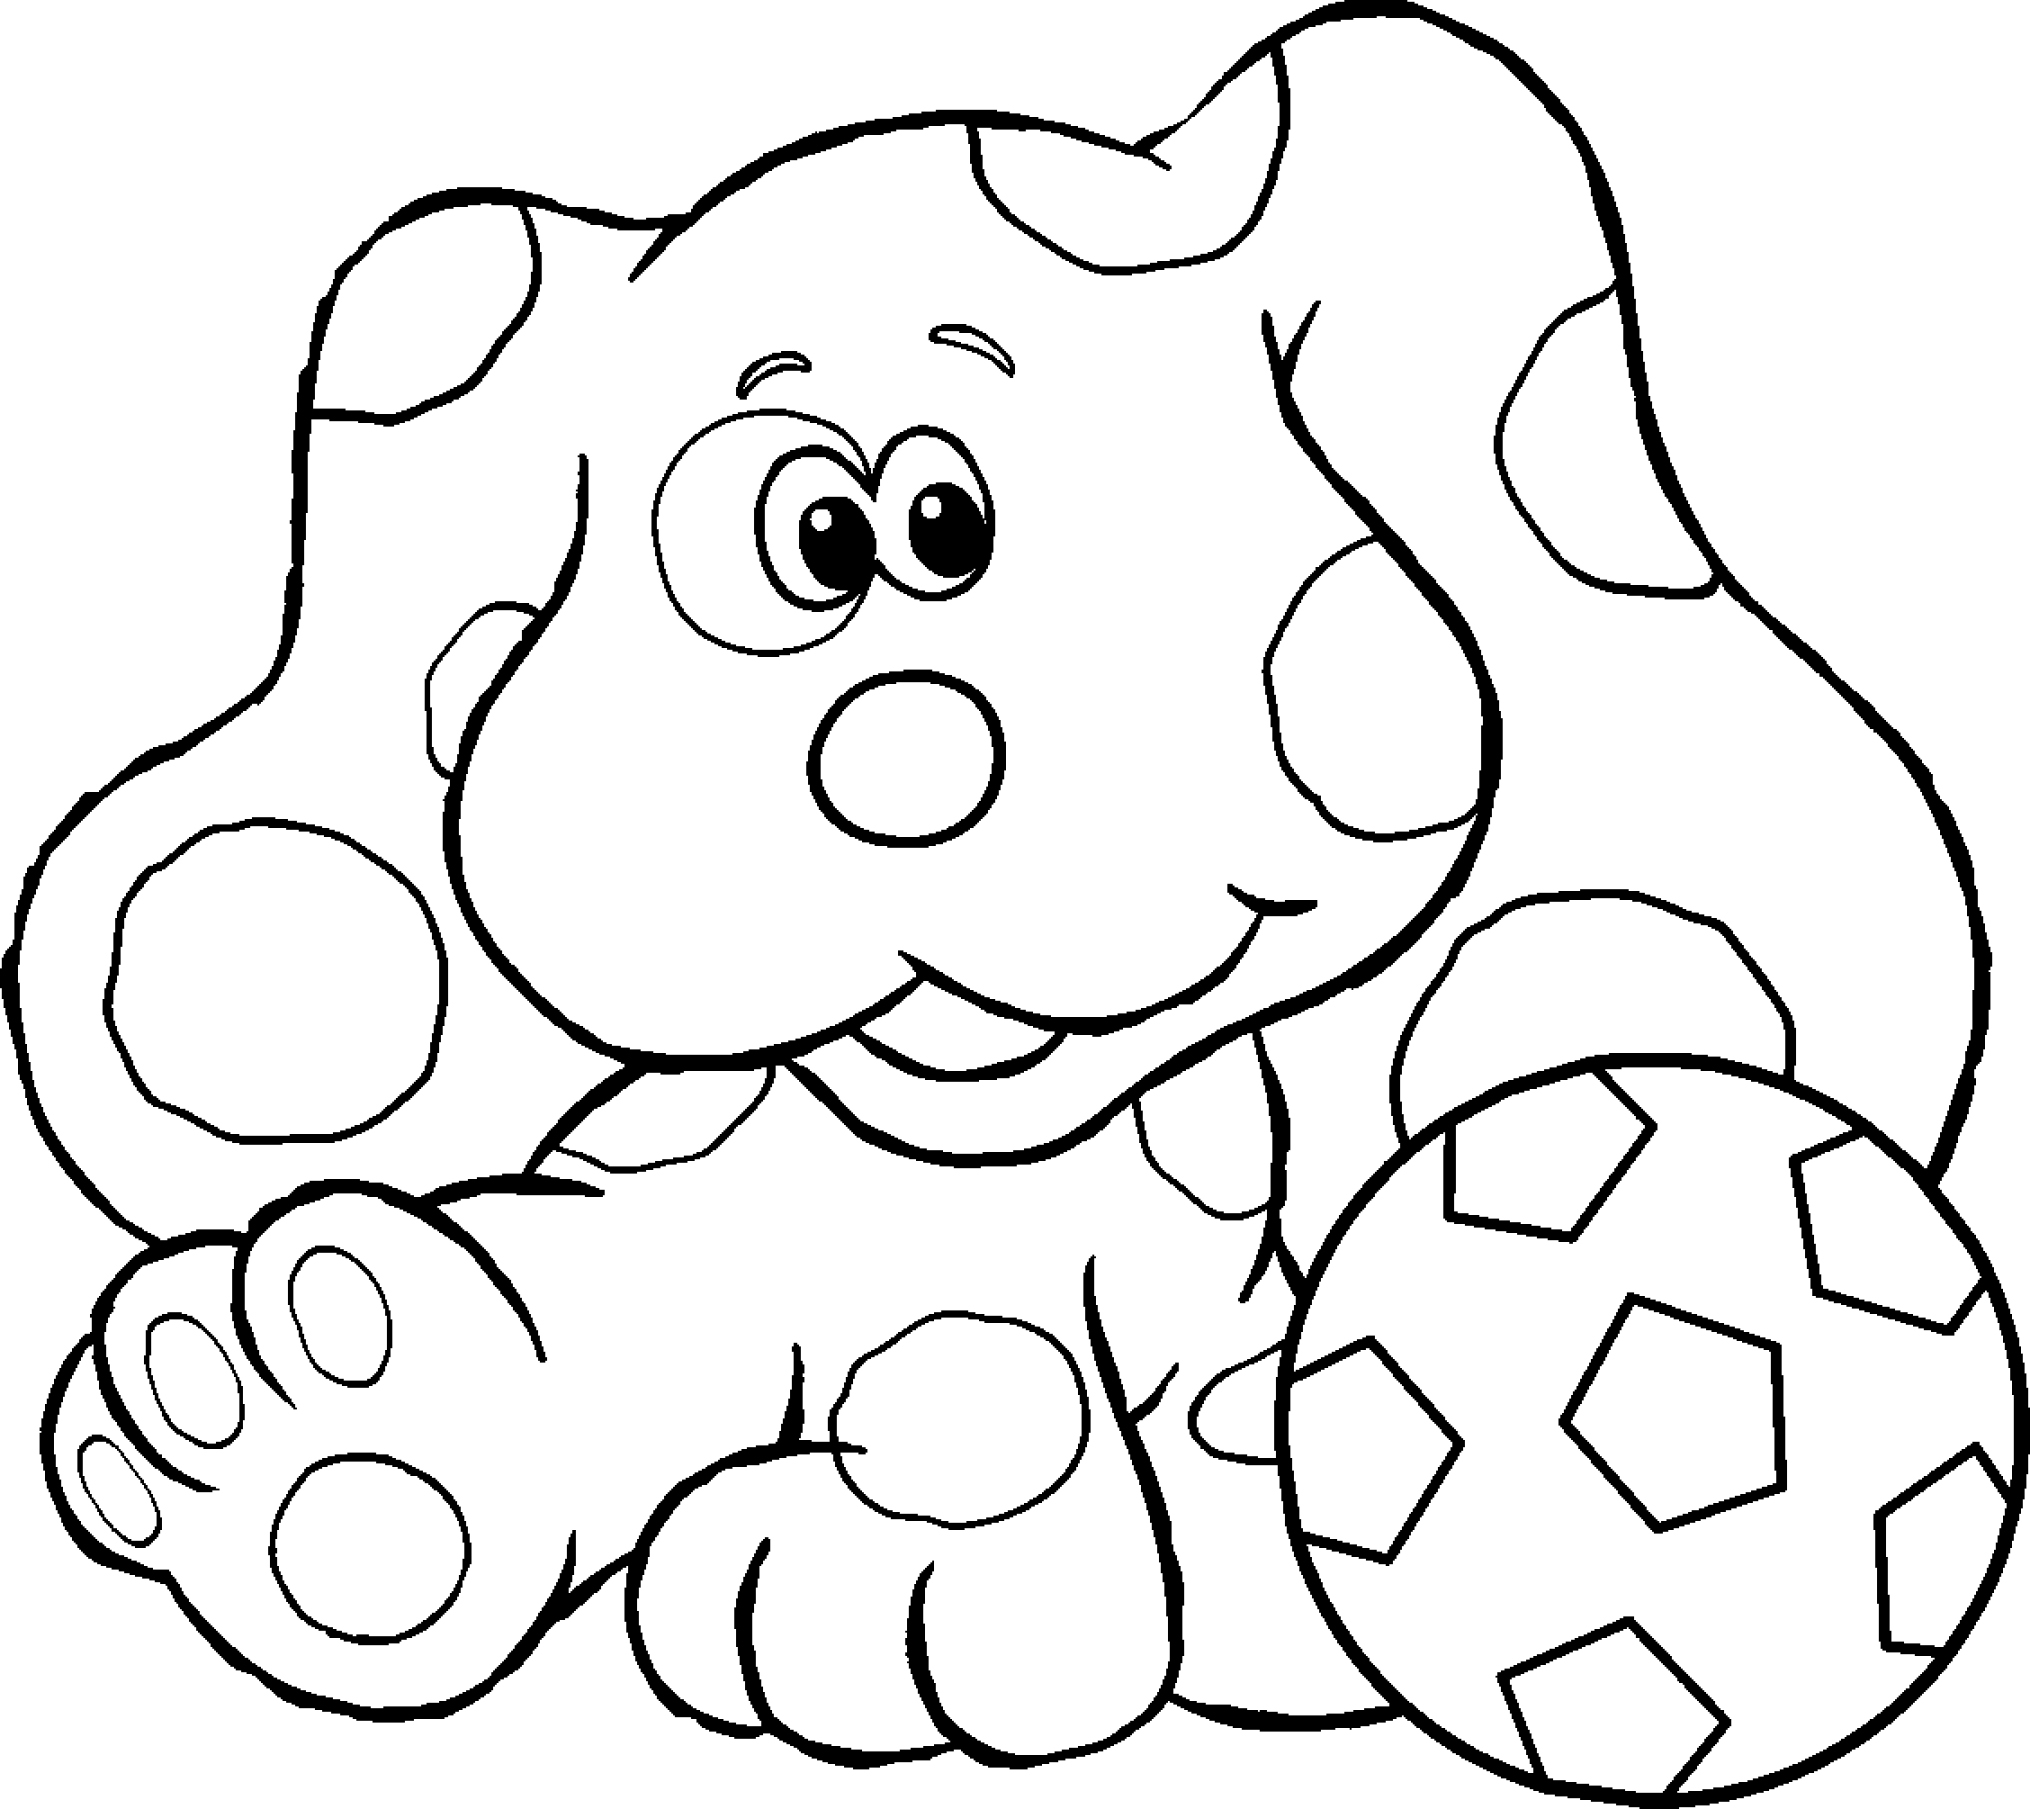 Printable Blue\'s Clues Coloring Pages | ColoringMe.com